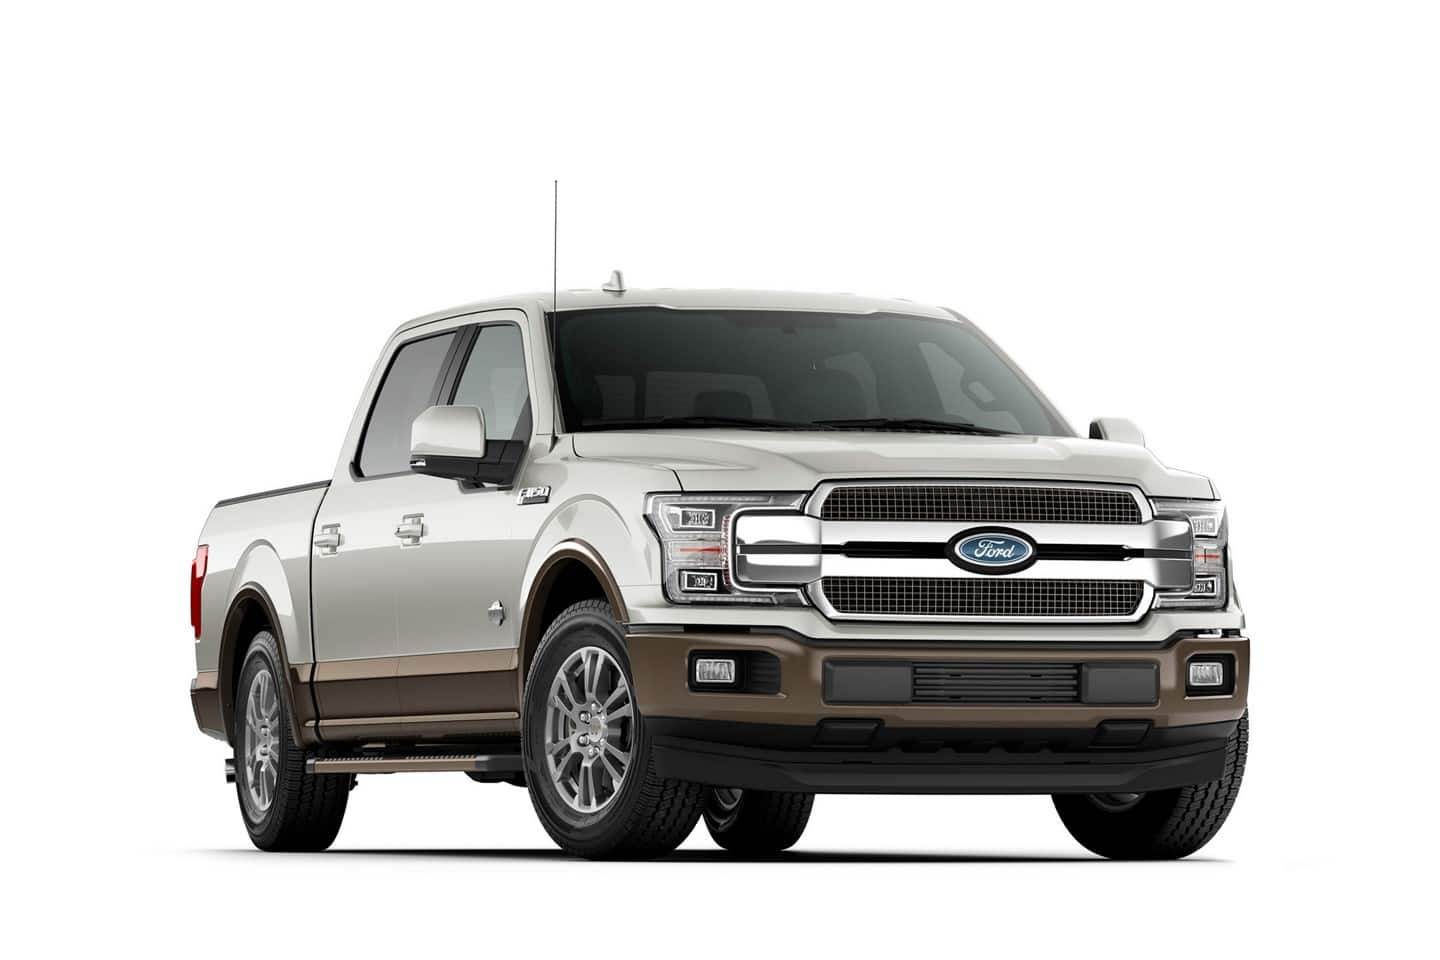 86 Best Review 2019 Ford Production Schedule Release for 2019 Ford Production Schedule